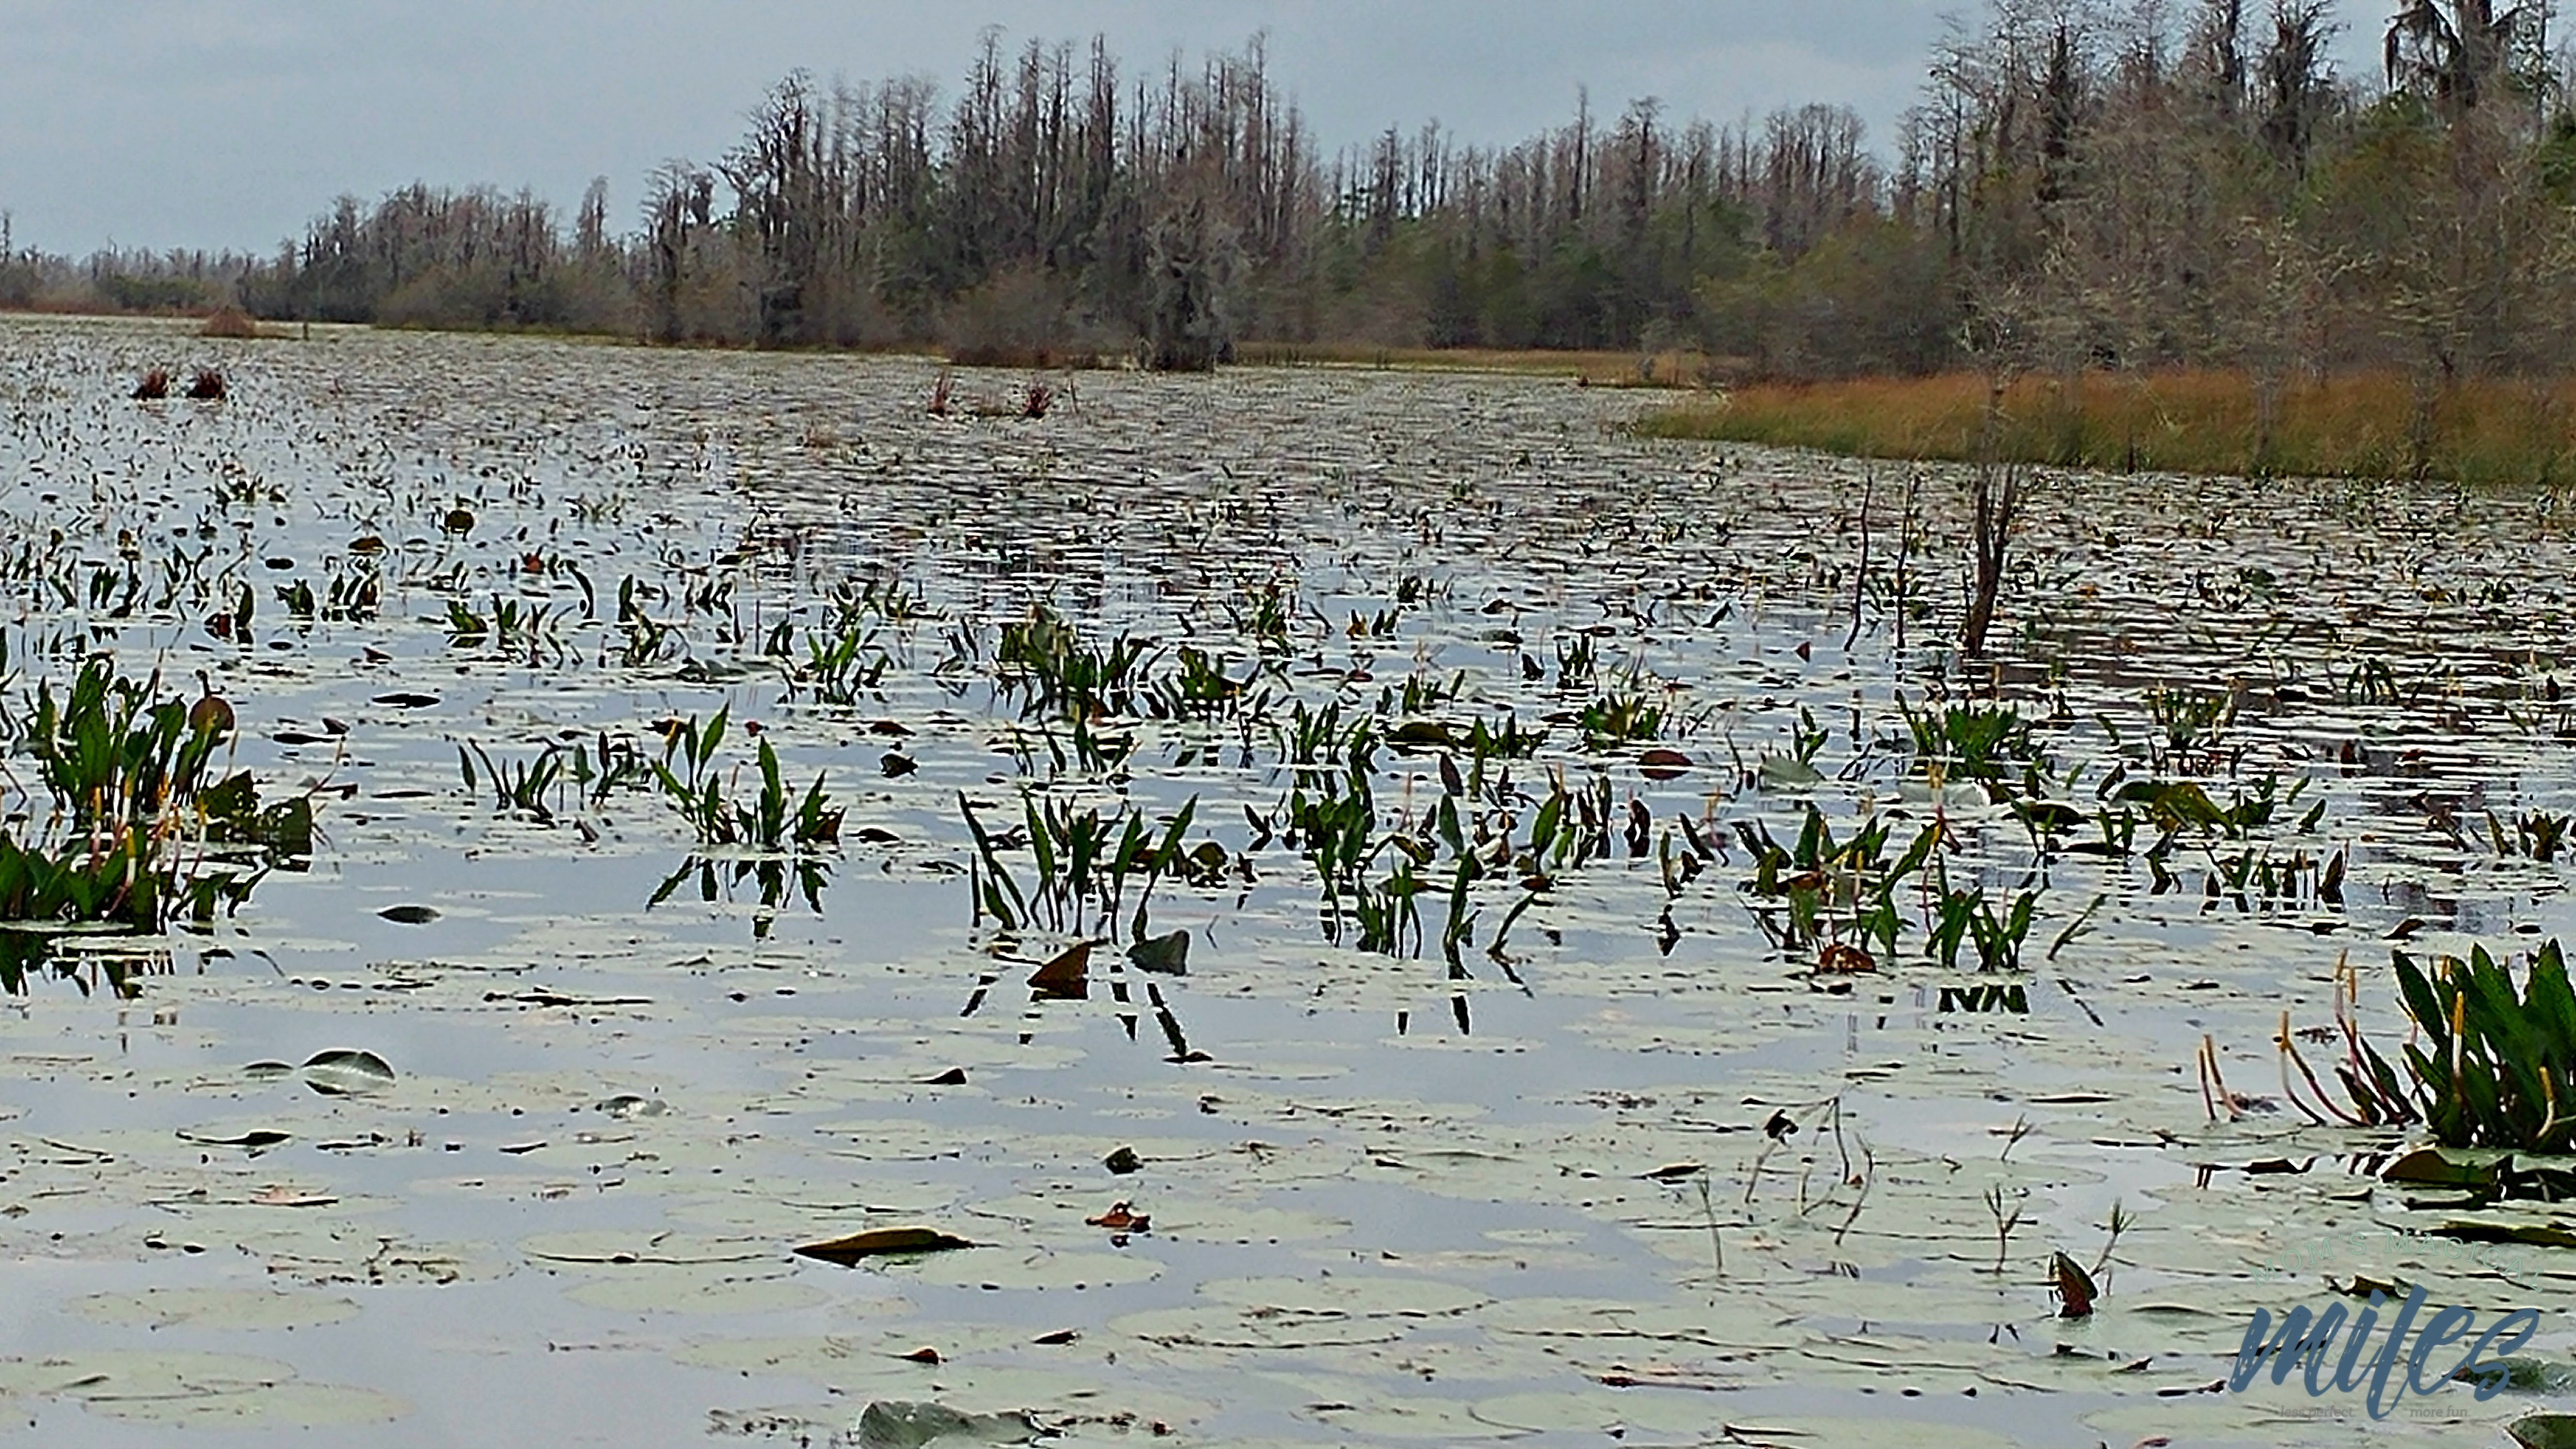 I had no idea I would be traversing a prairie at the Okefenokee Swamp. It was beautiful and peaceful!